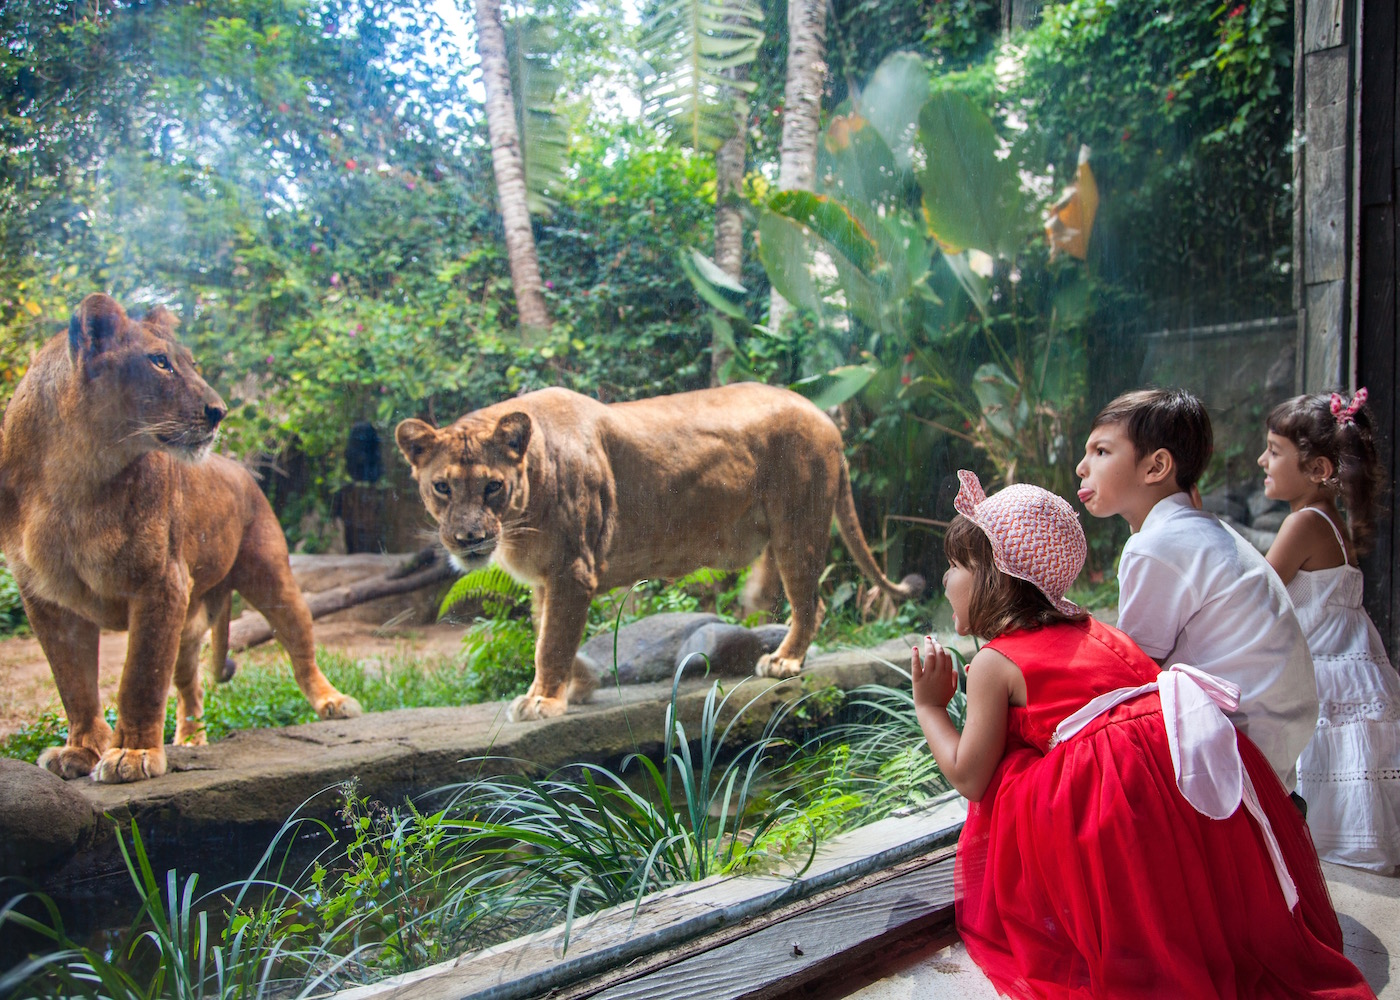 Kids meeting lions at Bali Zoo in Gianyar (near Ubud) in Bali, Indonesia